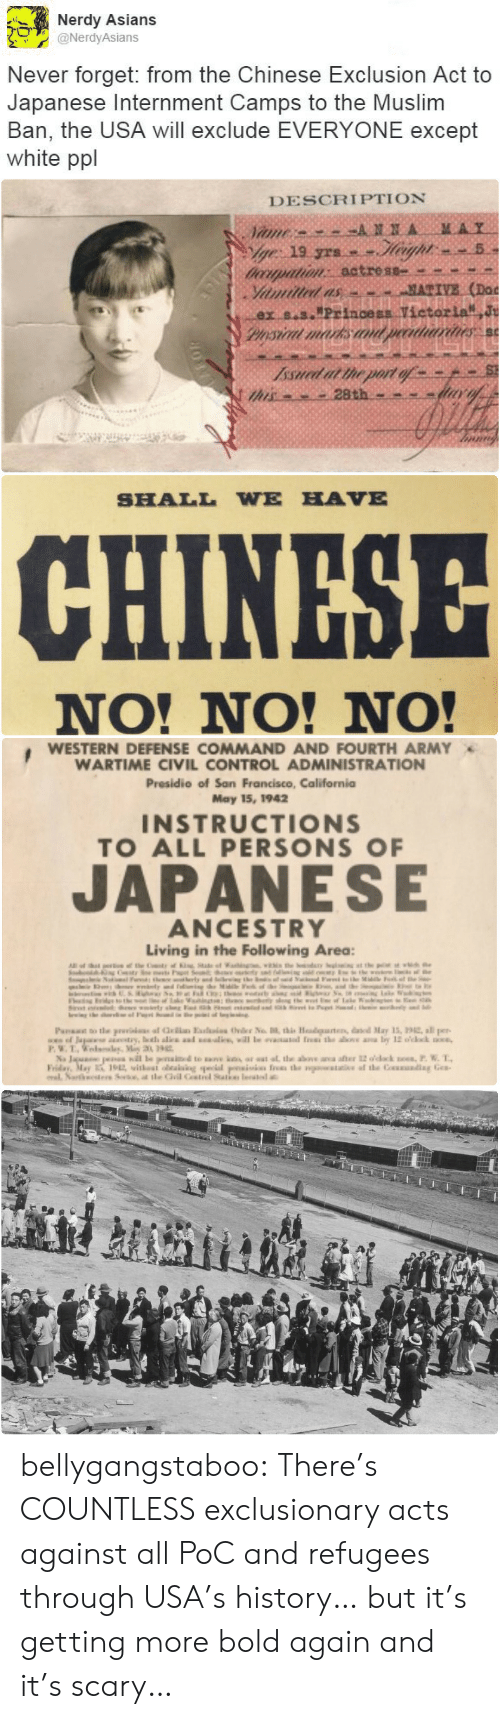 "presidio: Nerdy Asians  @NerdyAsians  Never forget: from the Chinese Exclusion Act to  Japanese Internment Camps to the Muslim  Ban, the USA will exclude EVERYONE except  white ppl   DESCRIPTION  MAY  ANNA  Vame  ge 19 yrs.  doorpation: actress  Yiamilled as  ex s.s.""Princess Vietorla J  Pysical marks an  MATIVE (Doc  peeatriarines  Issued at the port of  this   SHALL WE HAVE  CHINESE  NO! NO! NO!   WESTERN DEFENSE COMMAND AND FOURTH ARMY  WARTIME CIVIL CONTROL ADMINISTRATION  Presidio of San Francisco, California  May 15, 1942  INSTRUCTIONS  TO ALL PERSONS OF  JAPANESE  ANCESTRY  Living in the Following Area:  Al  e eC  in  herty and S  M F e  the  www  of ale  nKe  Paa o the prui af la Eai Ovder No , this Headgaten, daed May 15, 22, all per  www.of Japase try, oth alie ad will le eaated f the as a by 12 o'cck  P.W.T.edlay, Miy 3 9  Na Jaua pea il le penaid te ak ar at at the above ana after 12 odack noes,P. W. T  Friday, May 1912 withest oeaiaing pecial psiis fres the watae af the Couading Gea  al Nartesters Se, t tle Gil Cstrel Satke leate bellygangstaboo:   There's COUNTLESS exclusionary acts against all PoC and refugees through USA's history… but it's getting more bold again and it's scary…"